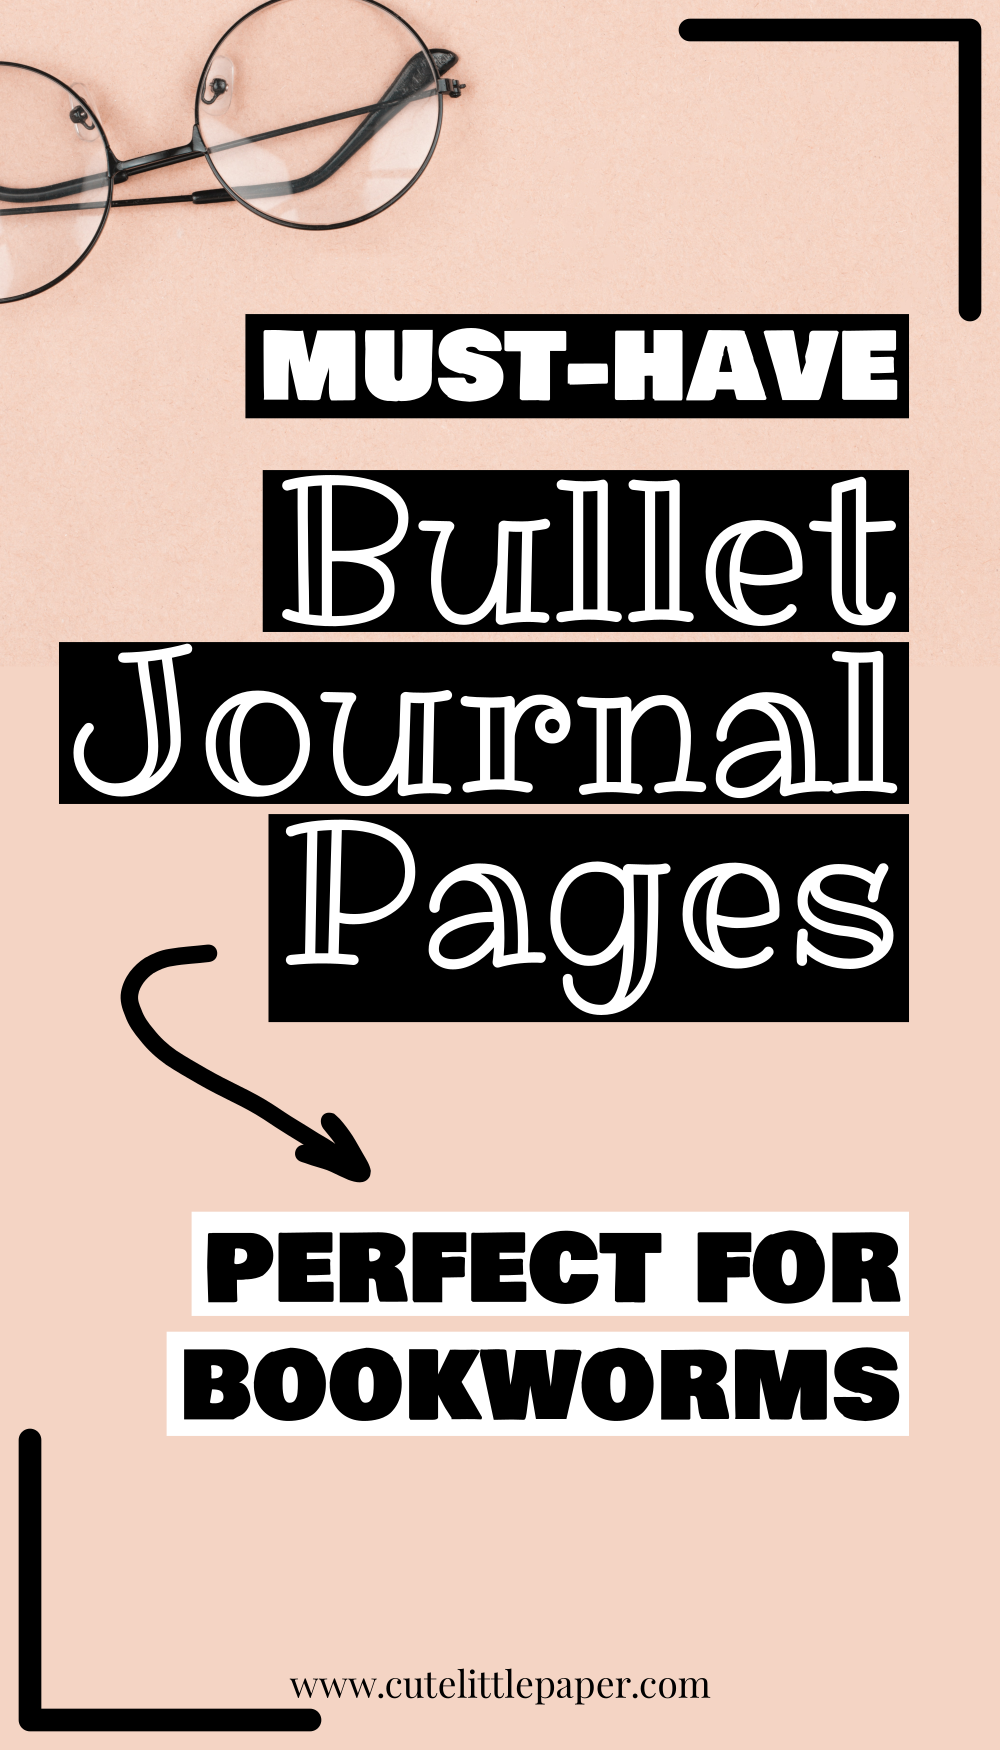 Bullet Journal Book Pages Every Book Lover Must Have - Cute Little Paper